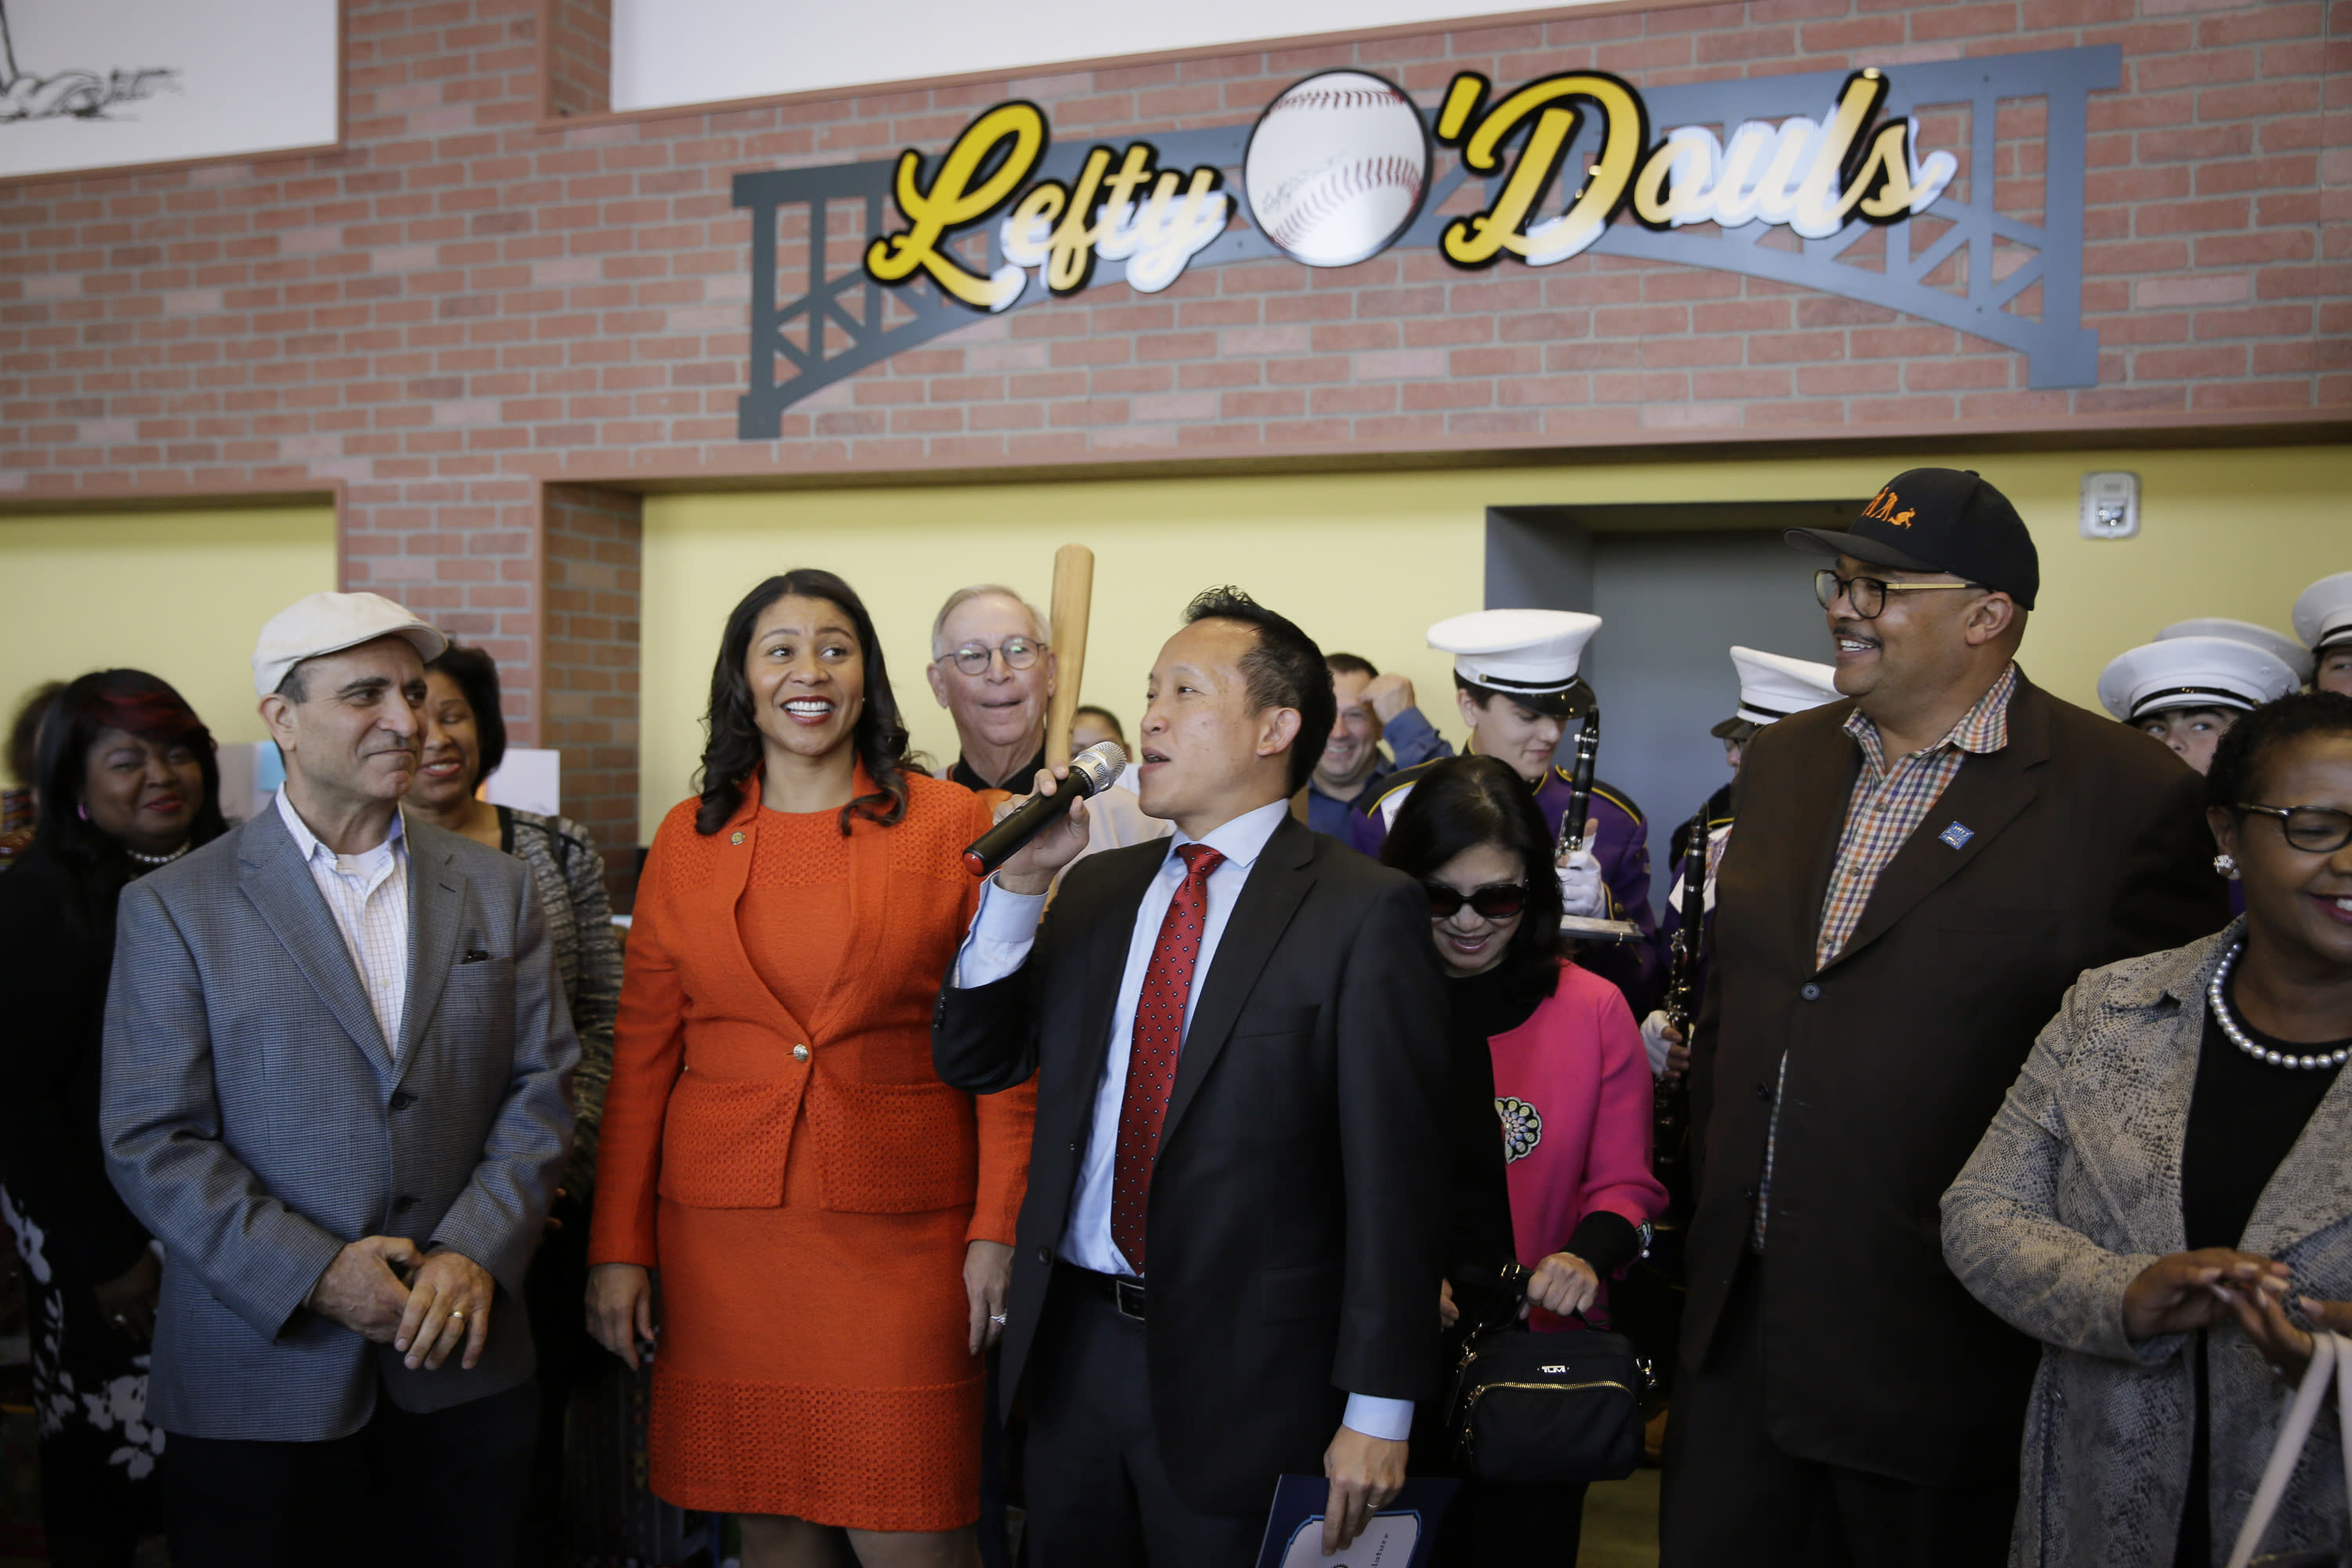 FILE - In this Nov. 20, 2018, file photo, from left, owner Nick Bovis, San Francisco Mayor London Breed, state assemblyman David Chiu speaking and city public works director Mohammed Nuru take part in the opening ceremonies of Lefty O'Doul's Baseball Ballpark Buffet & Café at Fisherman's Wharf in San Francisco. A top San Francisco official in charge of cleaning up the city's notoriously filthy streets and a champion of adding more portable toilets has been arrested, jail records show. Nuru was taken into custody Monday, Jan. 27, 2020, along with Bovis, the owner of Lefty O'Doul's, a longtime sports bar popular with tourists. Records say only that the men were arrested for felony safekeeping, which typically indicates federal charges. (AP Photo/Eric Risberg)